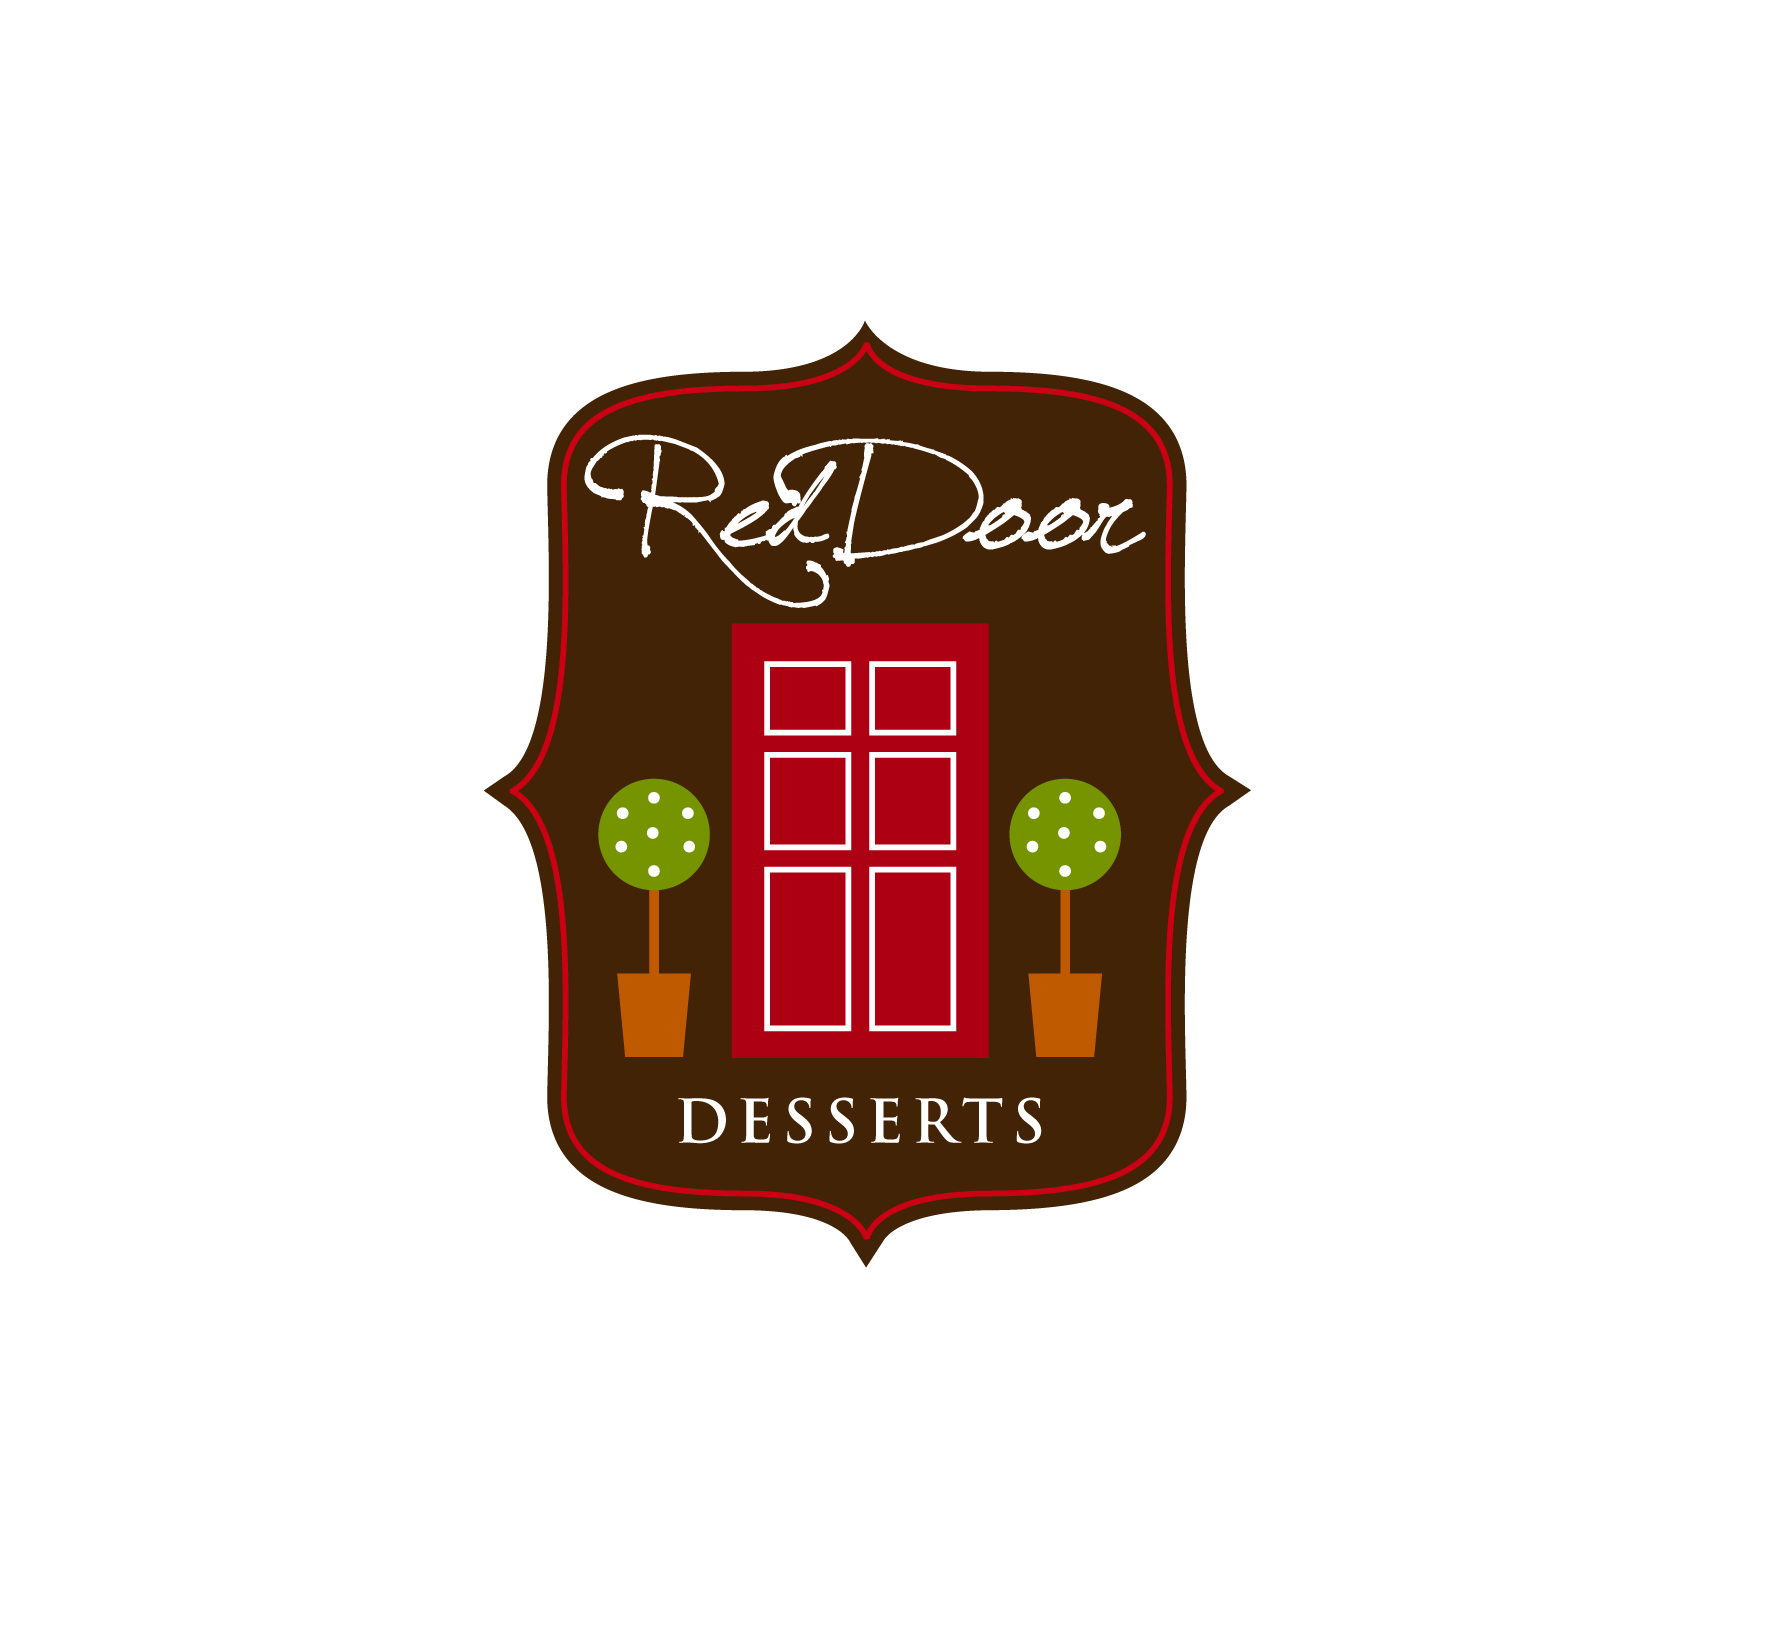 Logo Design by luna - Entry No. 70 in the Logo Design Contest Fun Logo Design for Red Door Desserts.